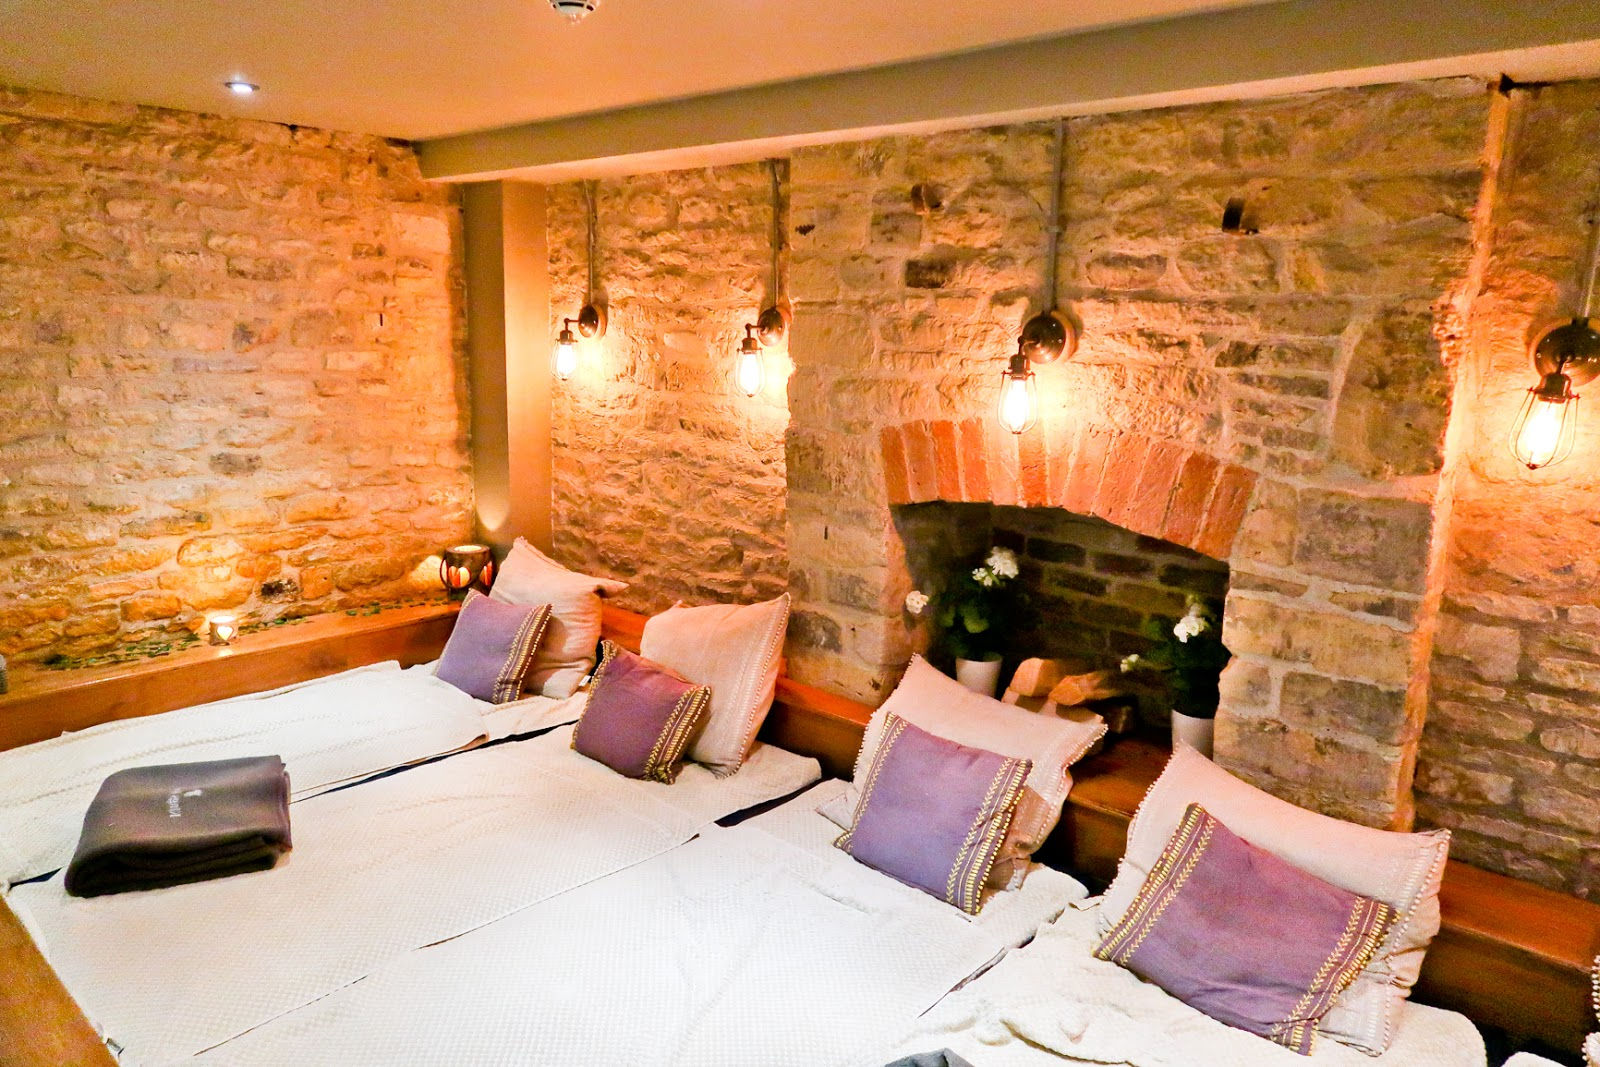 kings head hotel cirencester, kings head hotel review, kings head hotel cotswolds, kings head hotel spa,